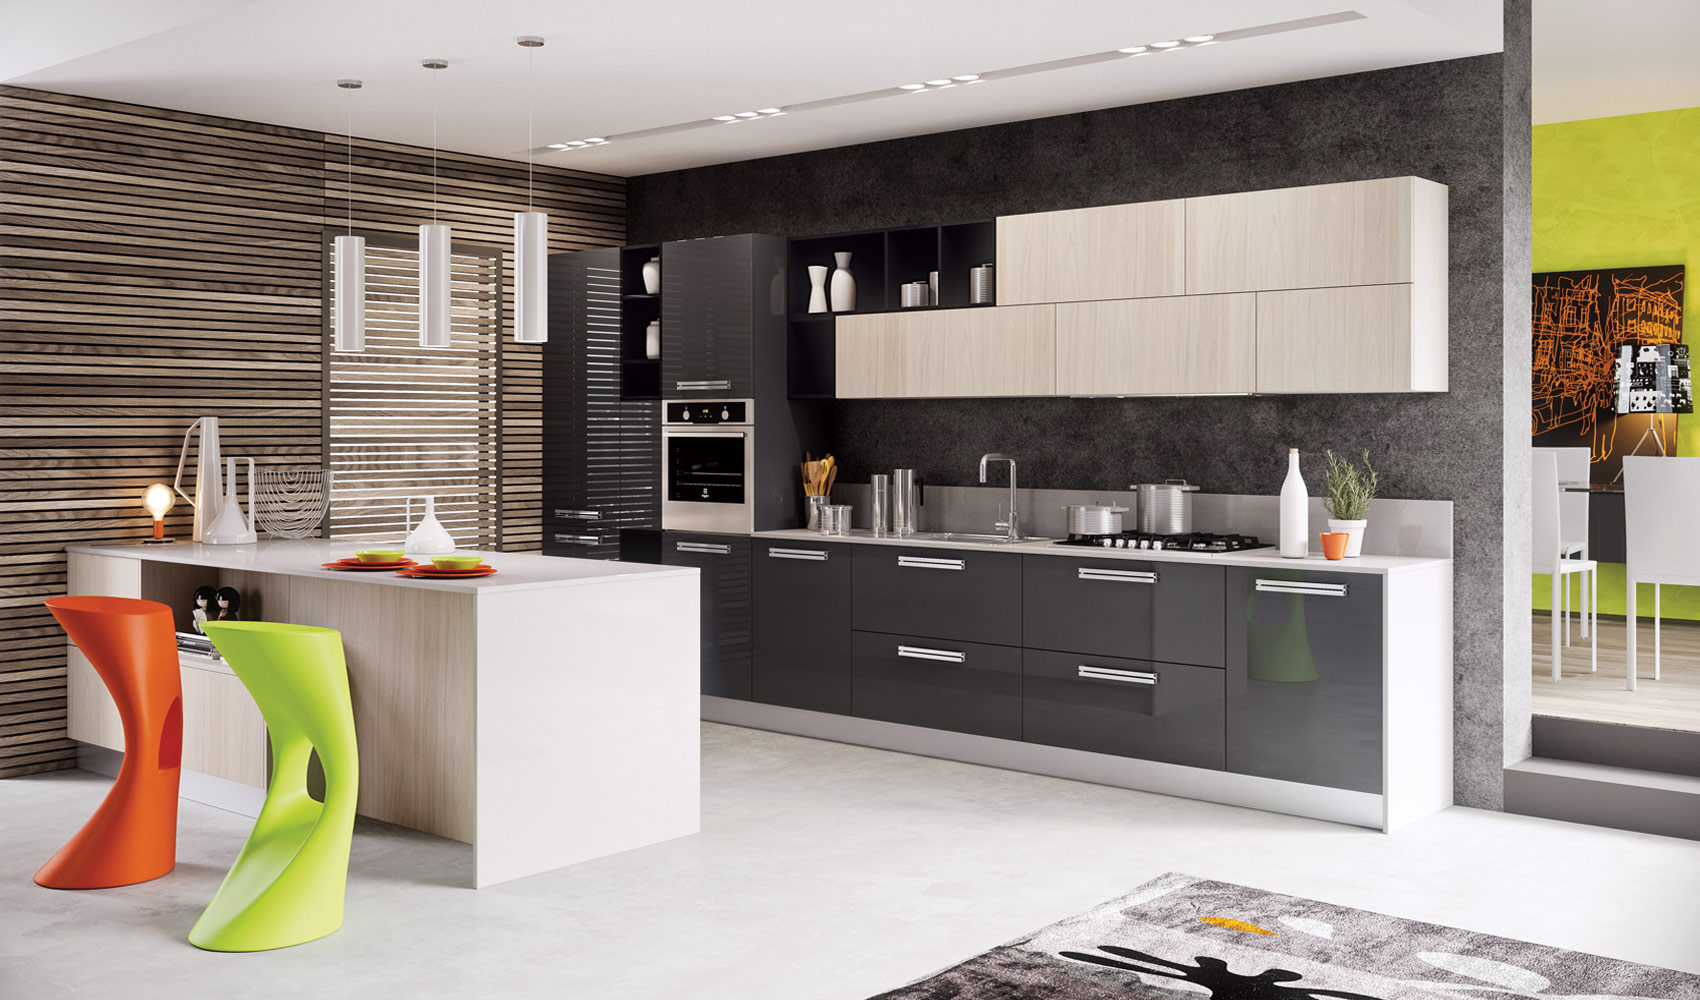 Contemporary kitchen design interior design ideas Kitchen design blogs 2014